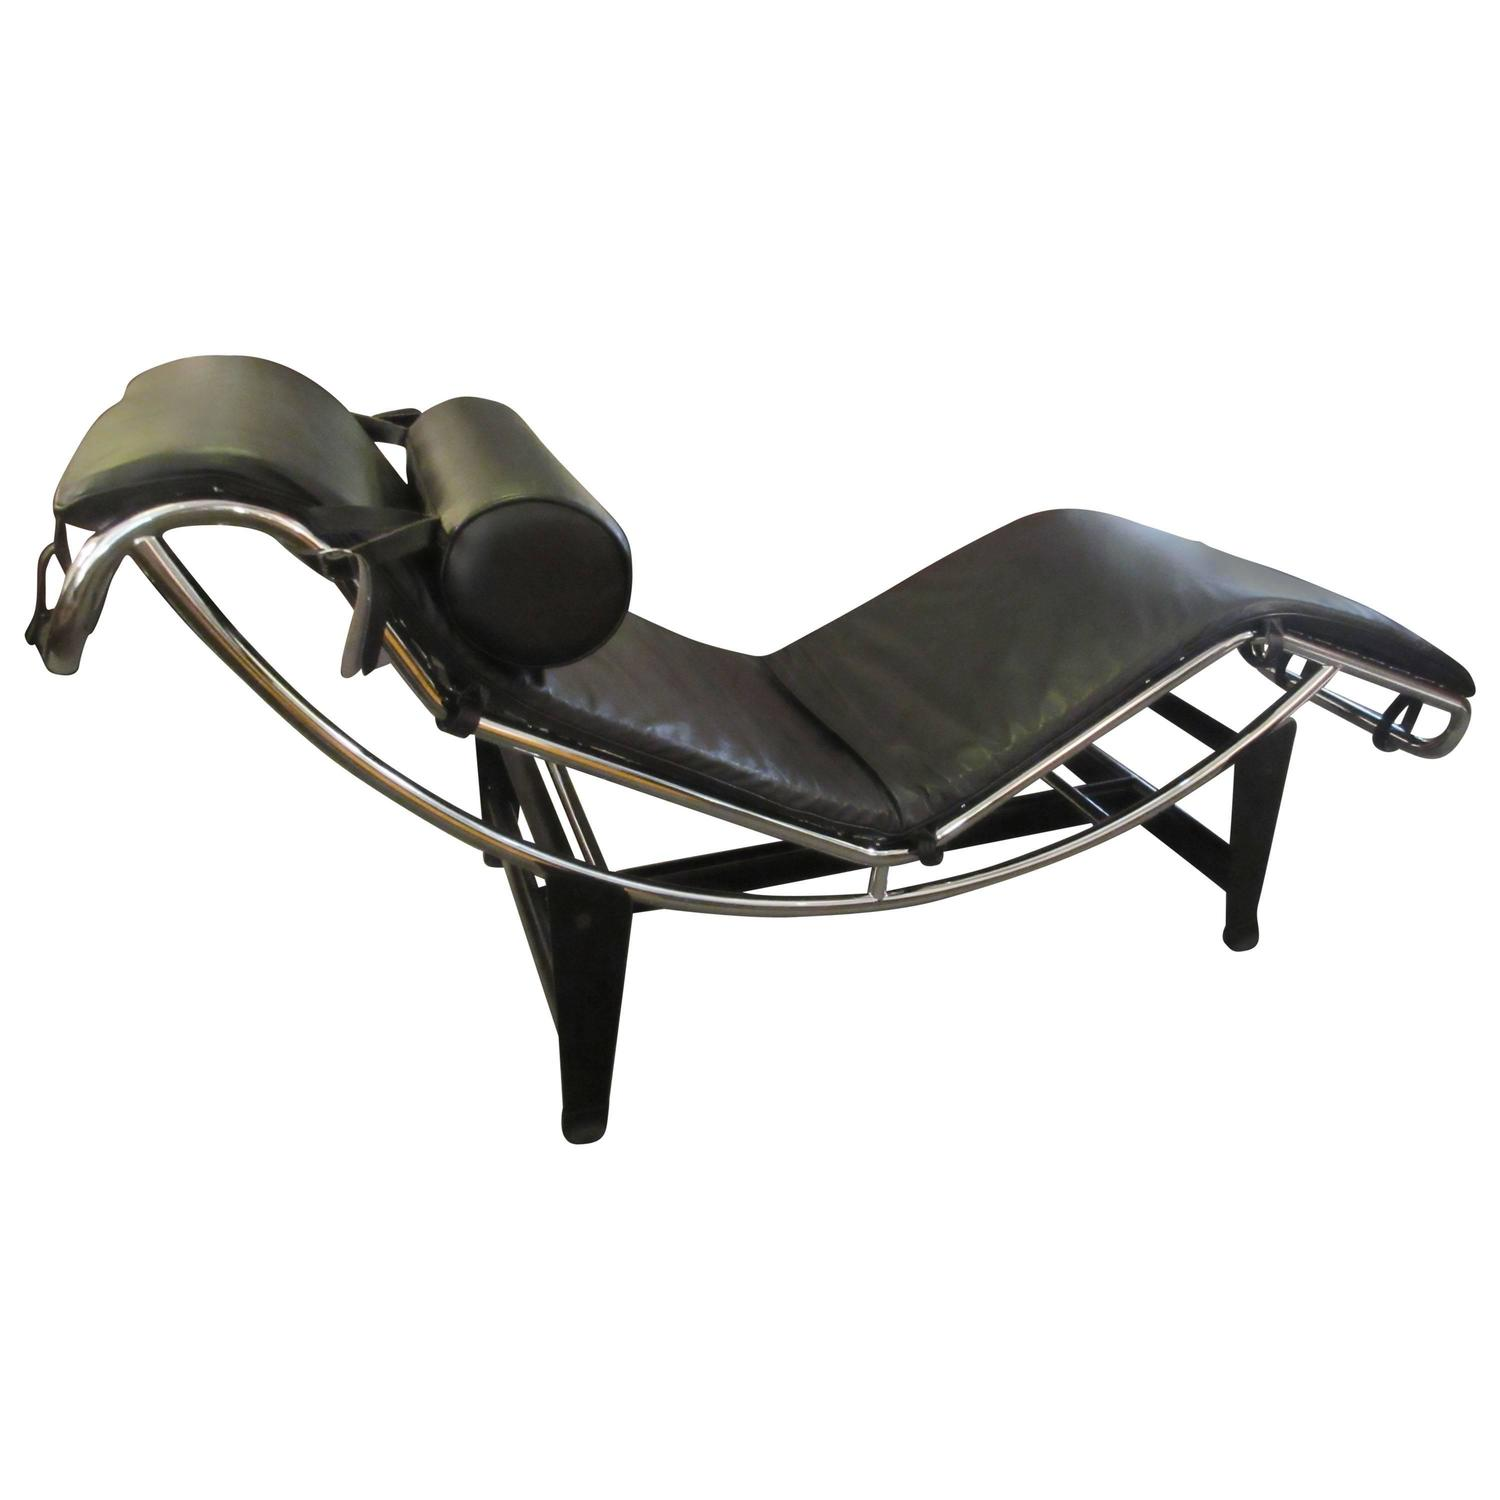 Le corbusier lc4 chrome and leather chaise longue at 1stdibs for Chaise longue le corbusier wikipedia